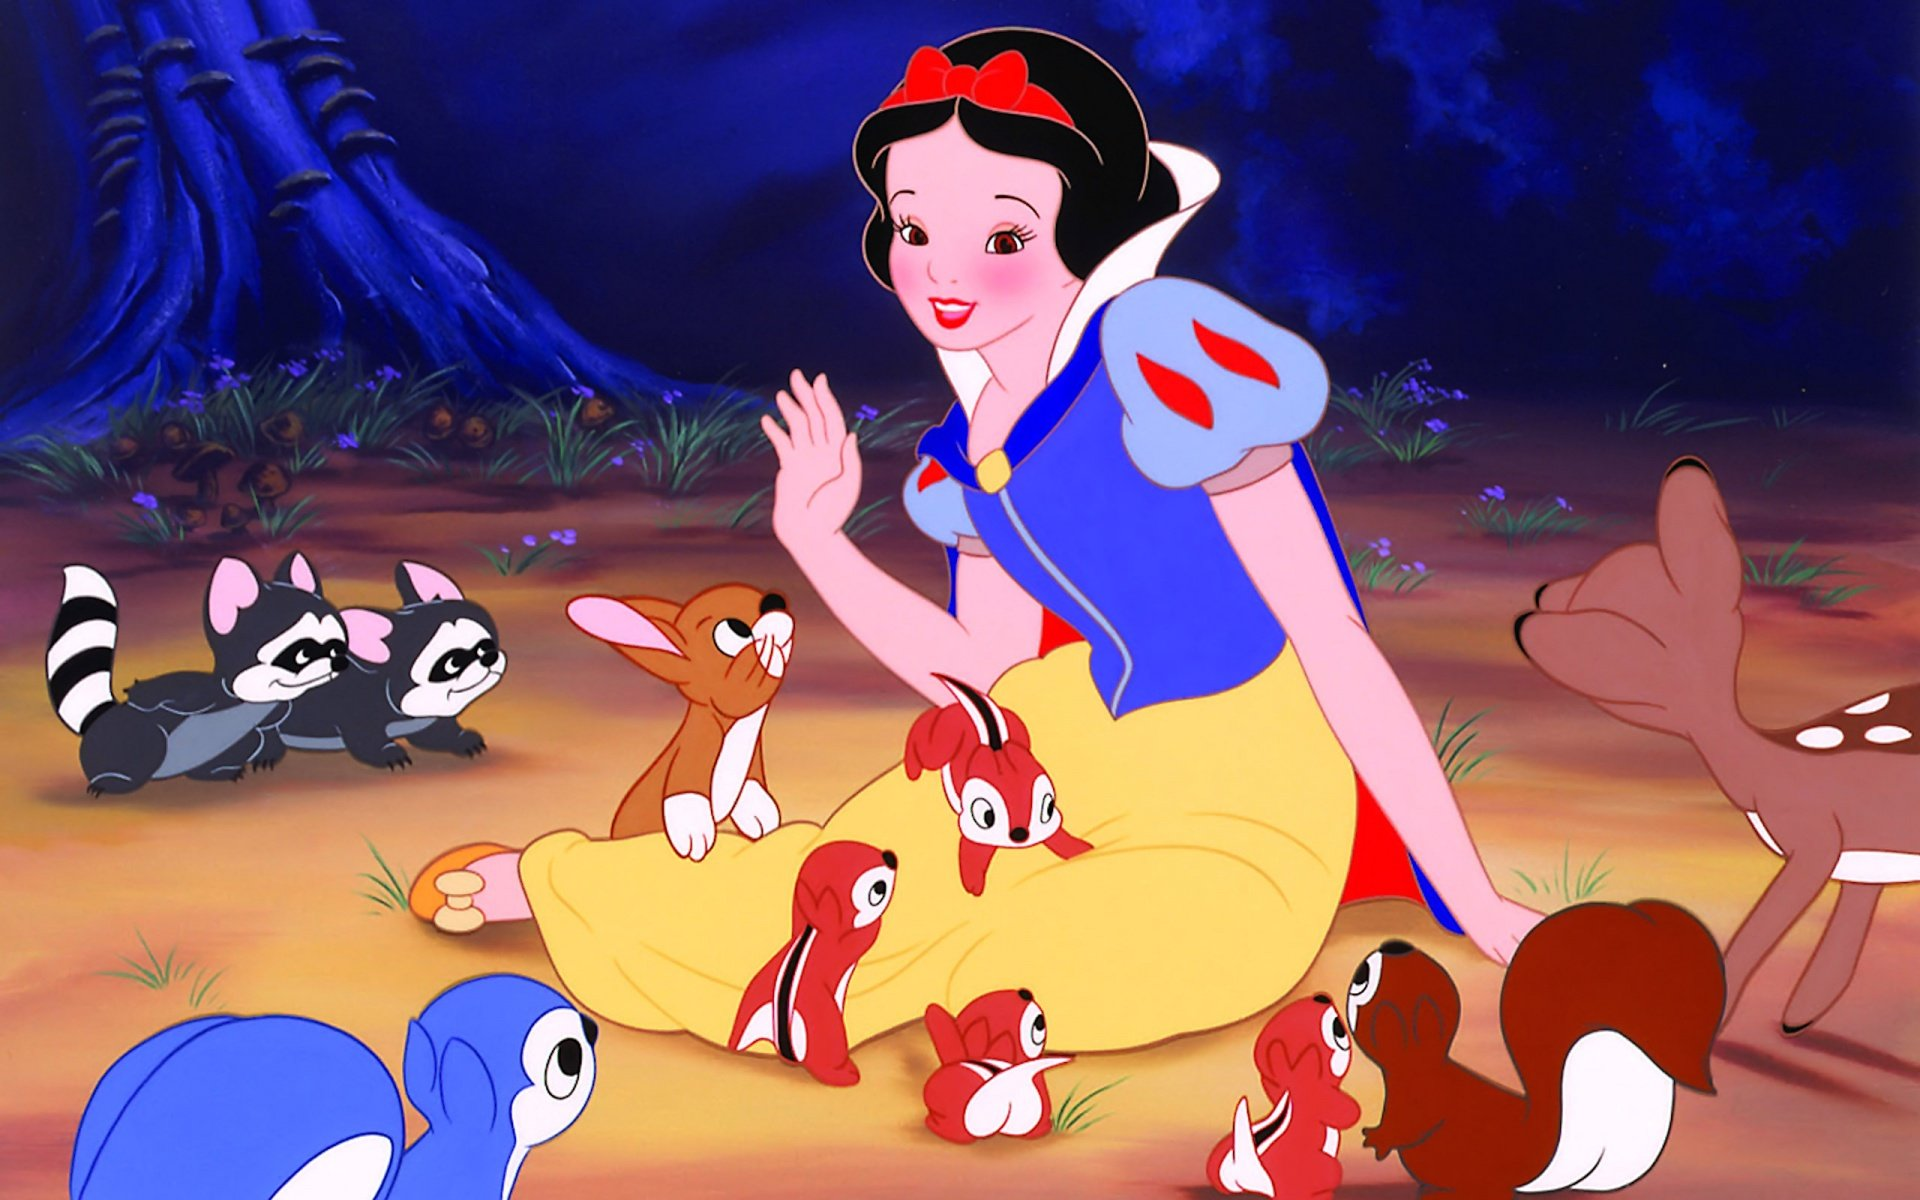 Free Download Snow White Wallpaper Id 446125 Hd 1920x1200 For Computer